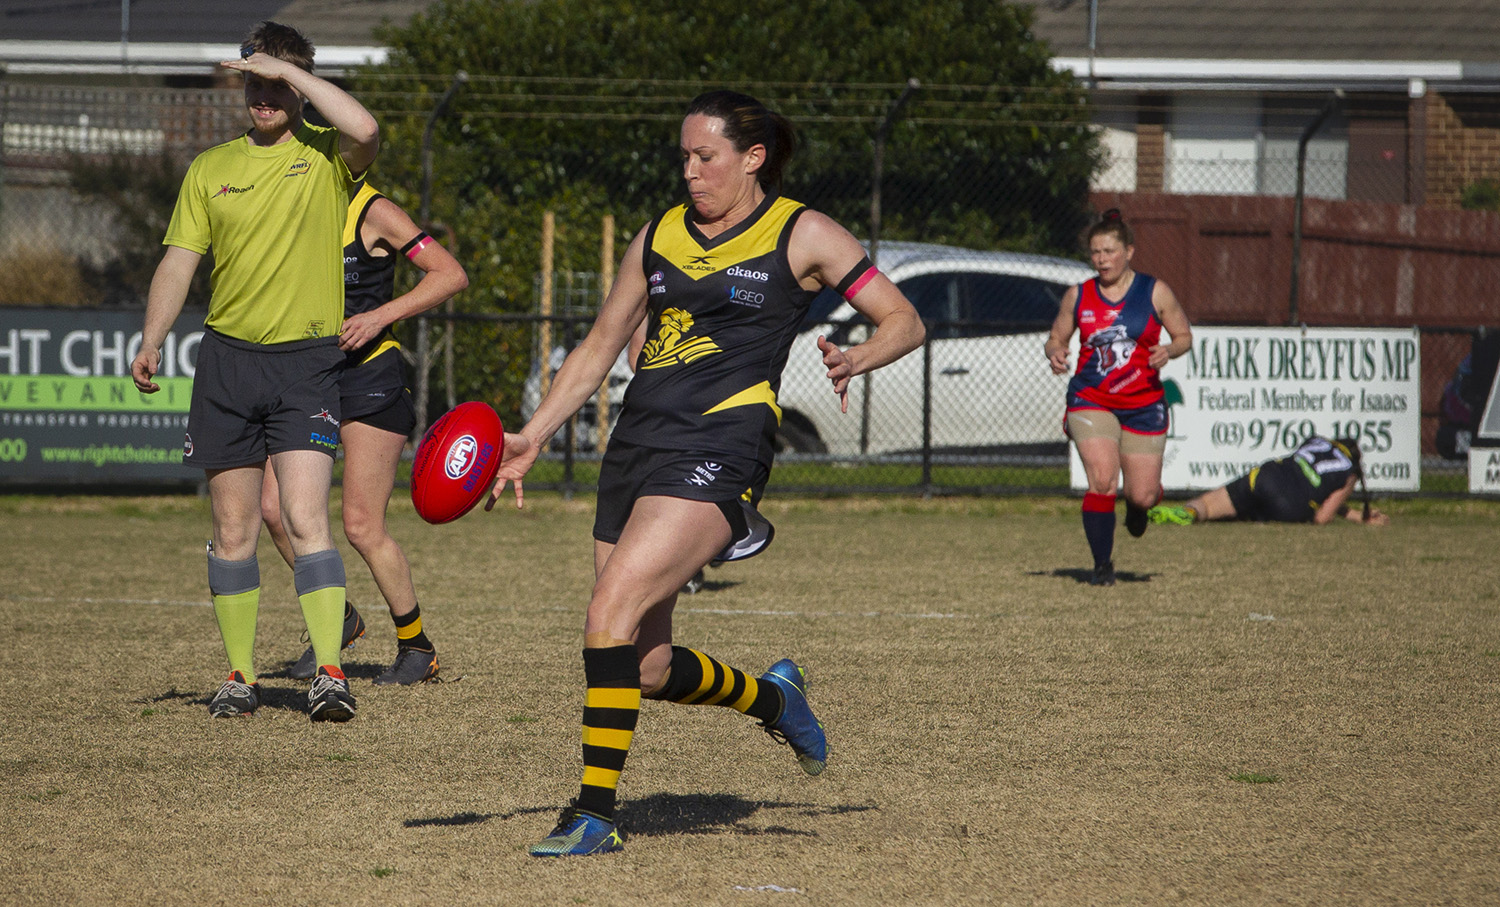 Driving the ball downfield in the final game of the season against rival Coburg.